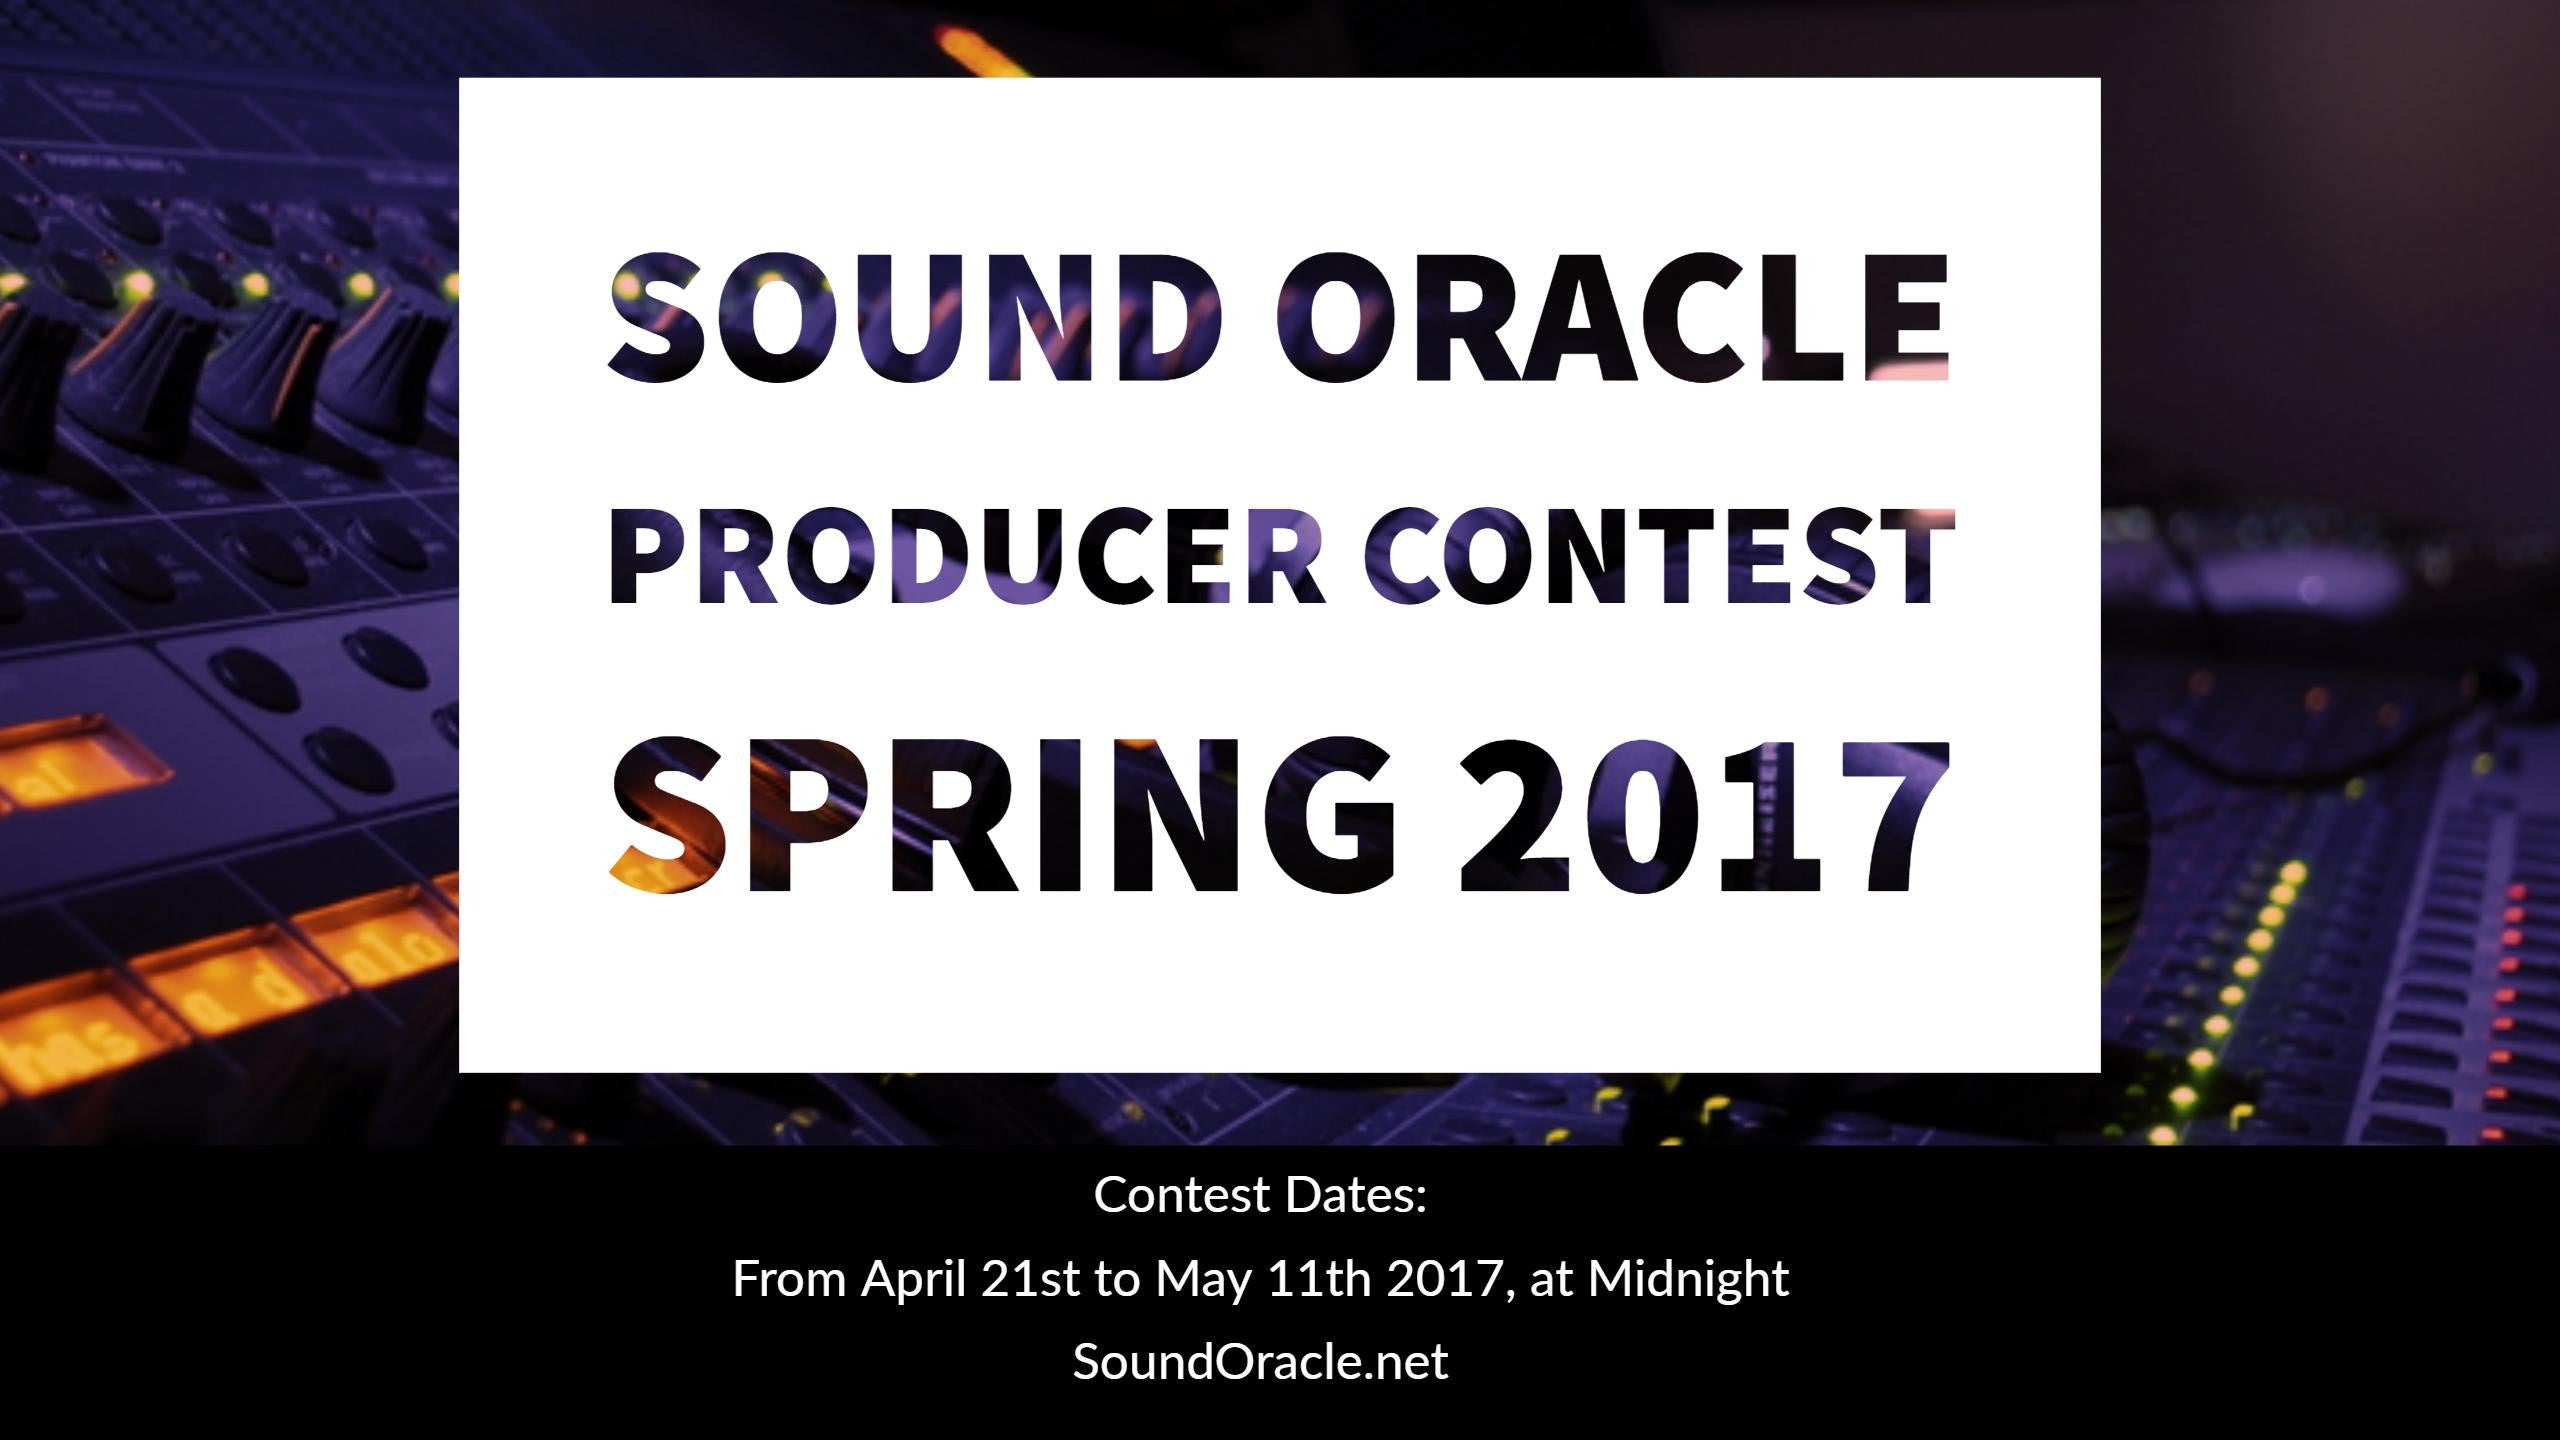 Sound Oracle Producer Contest (Spring 2017)